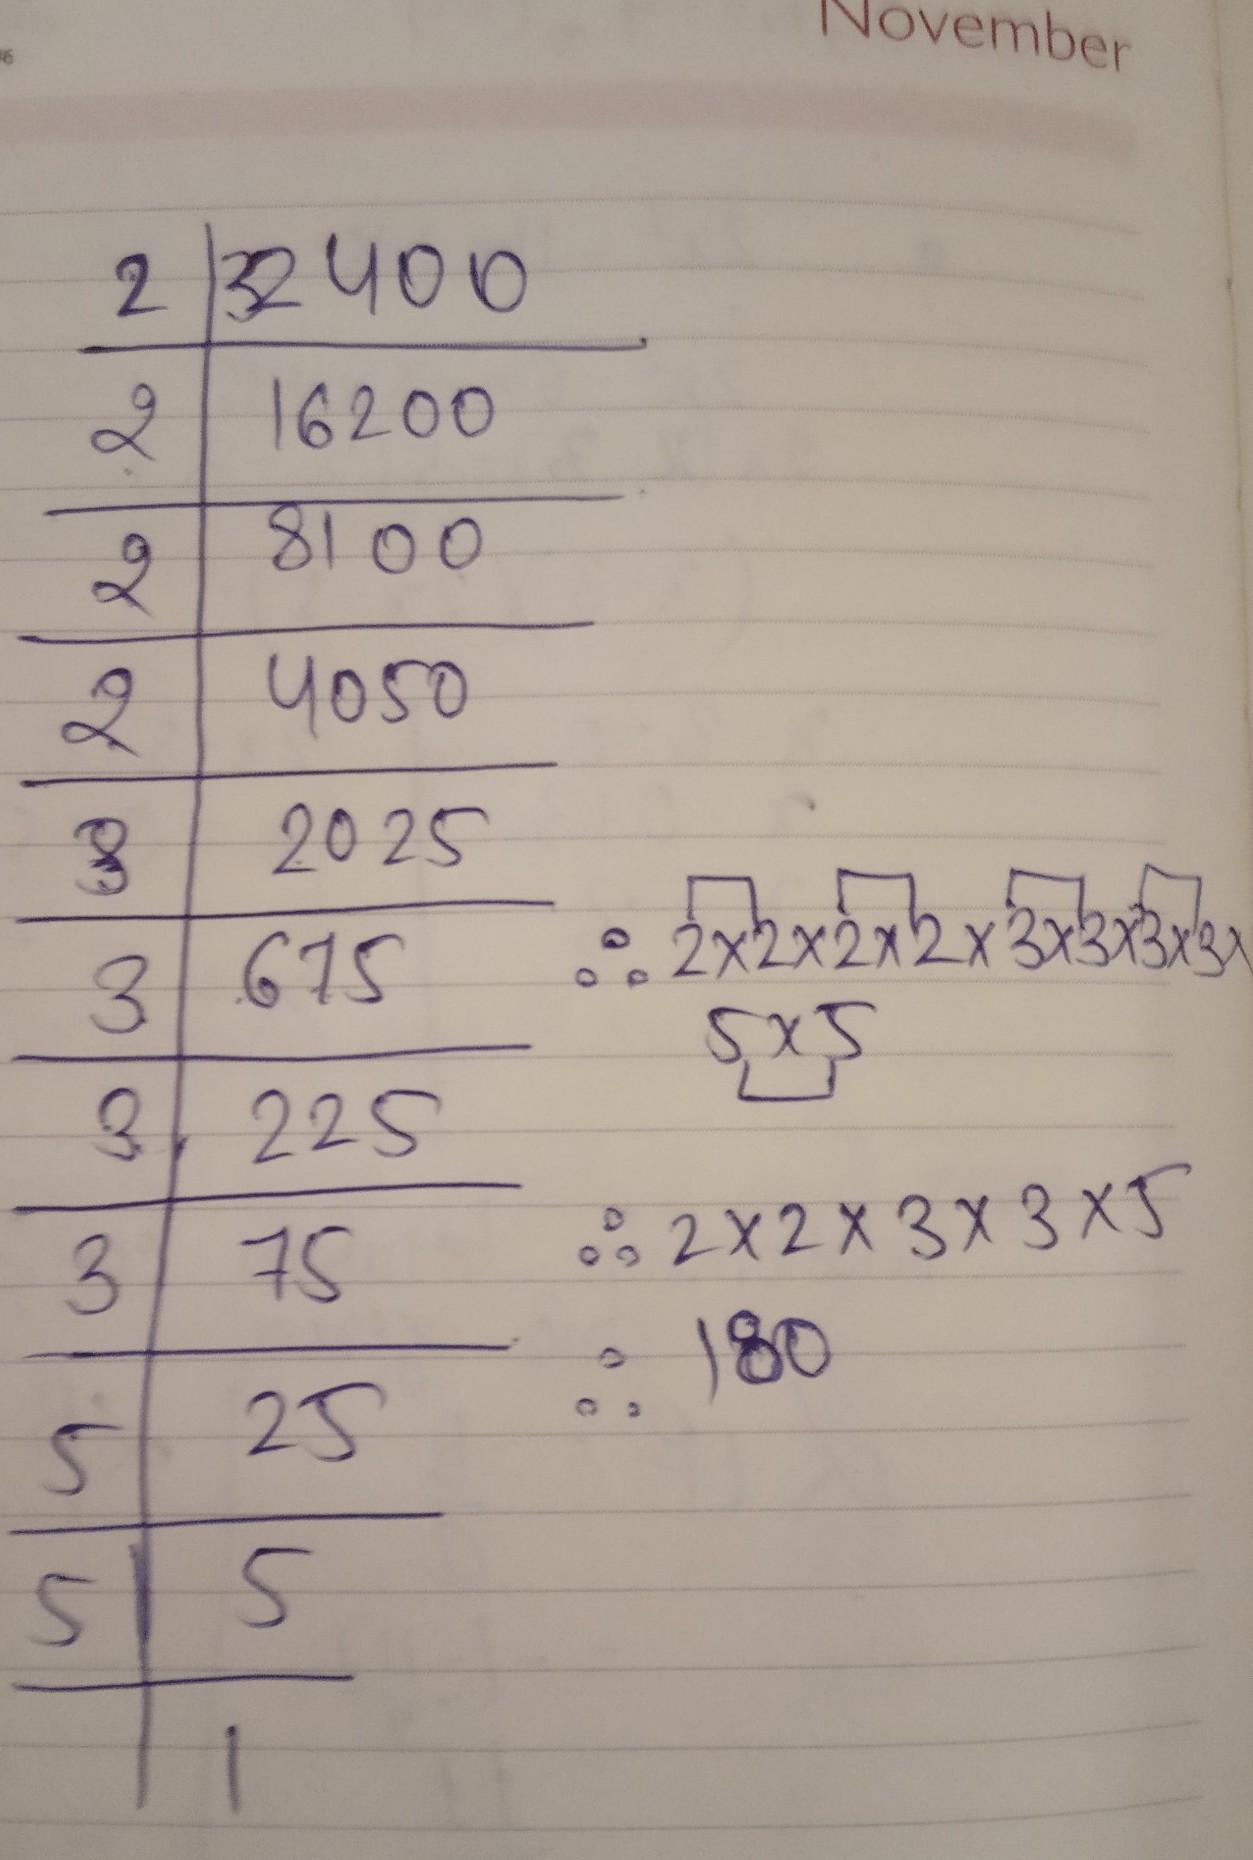 Find The Square Root Of 32400 By Prime Factor Method Brainly In (73^2)<5432<(74^2) then we choose form two threshold x1=73 & x2=74 nearest number to our. find the square root of 32400 by prime